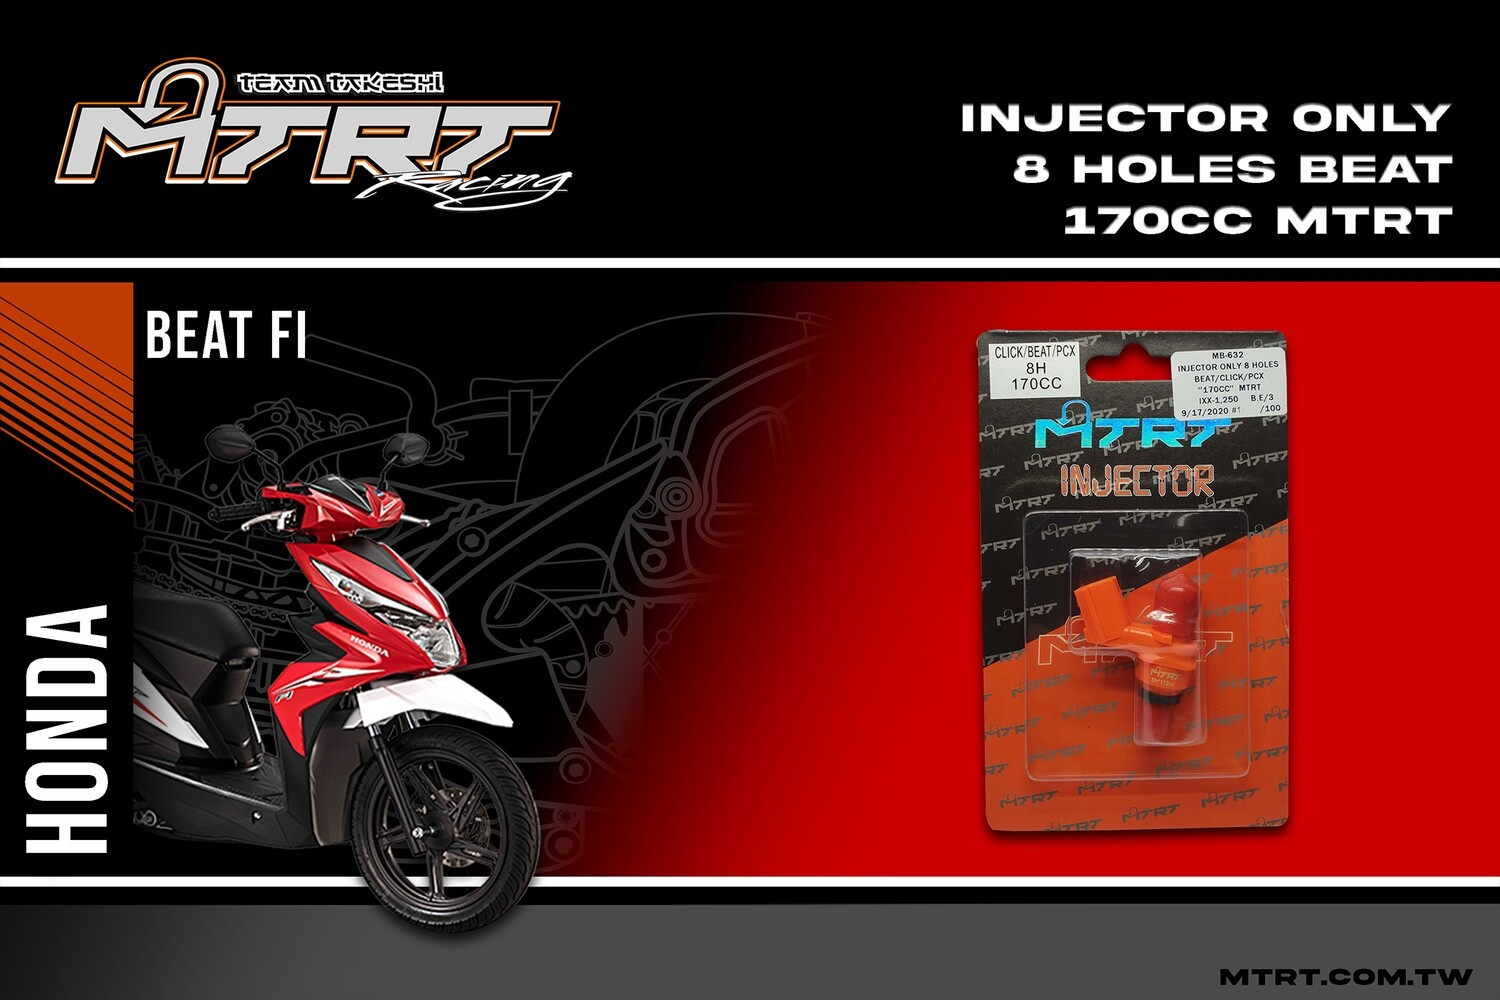 INJECTOR ONLY 8HOLES BEAT CLICK PCX 170CC MTRT